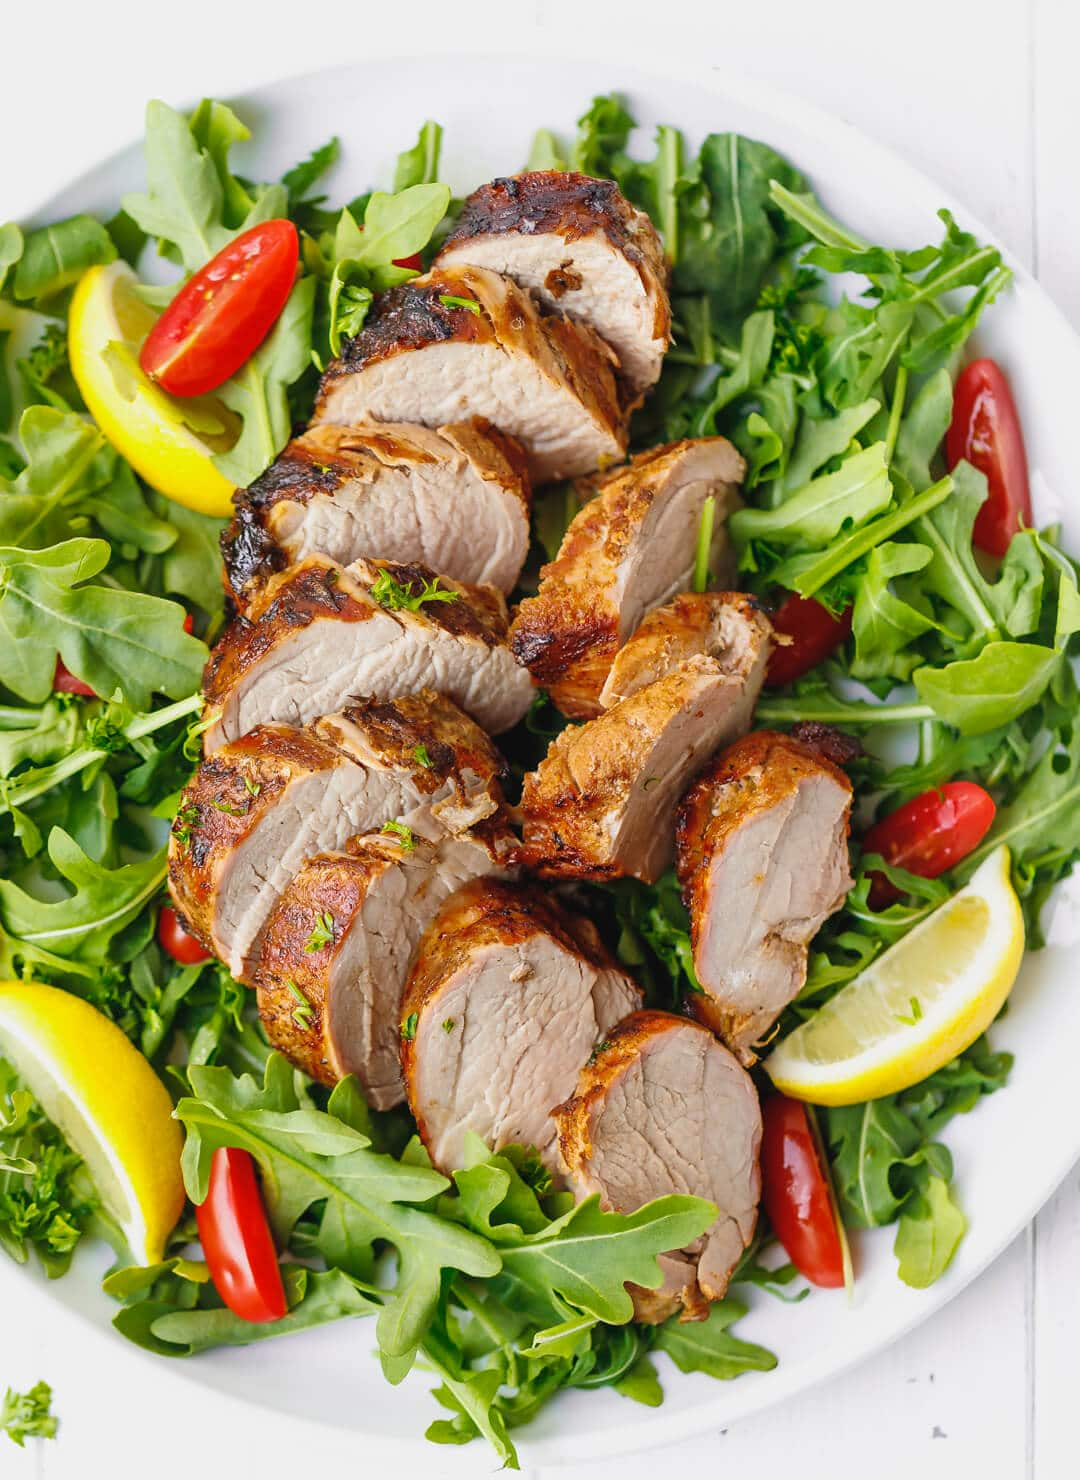 Grilled Pork Tenderloin Recipe - quick and easy to make, juicy and flavorful pork fillet, marinated in a simple combination of  spices and grilled to perfection. Serve it with a salad, grilled vegetables or potatoes. #grilling #pork #porktenderloin